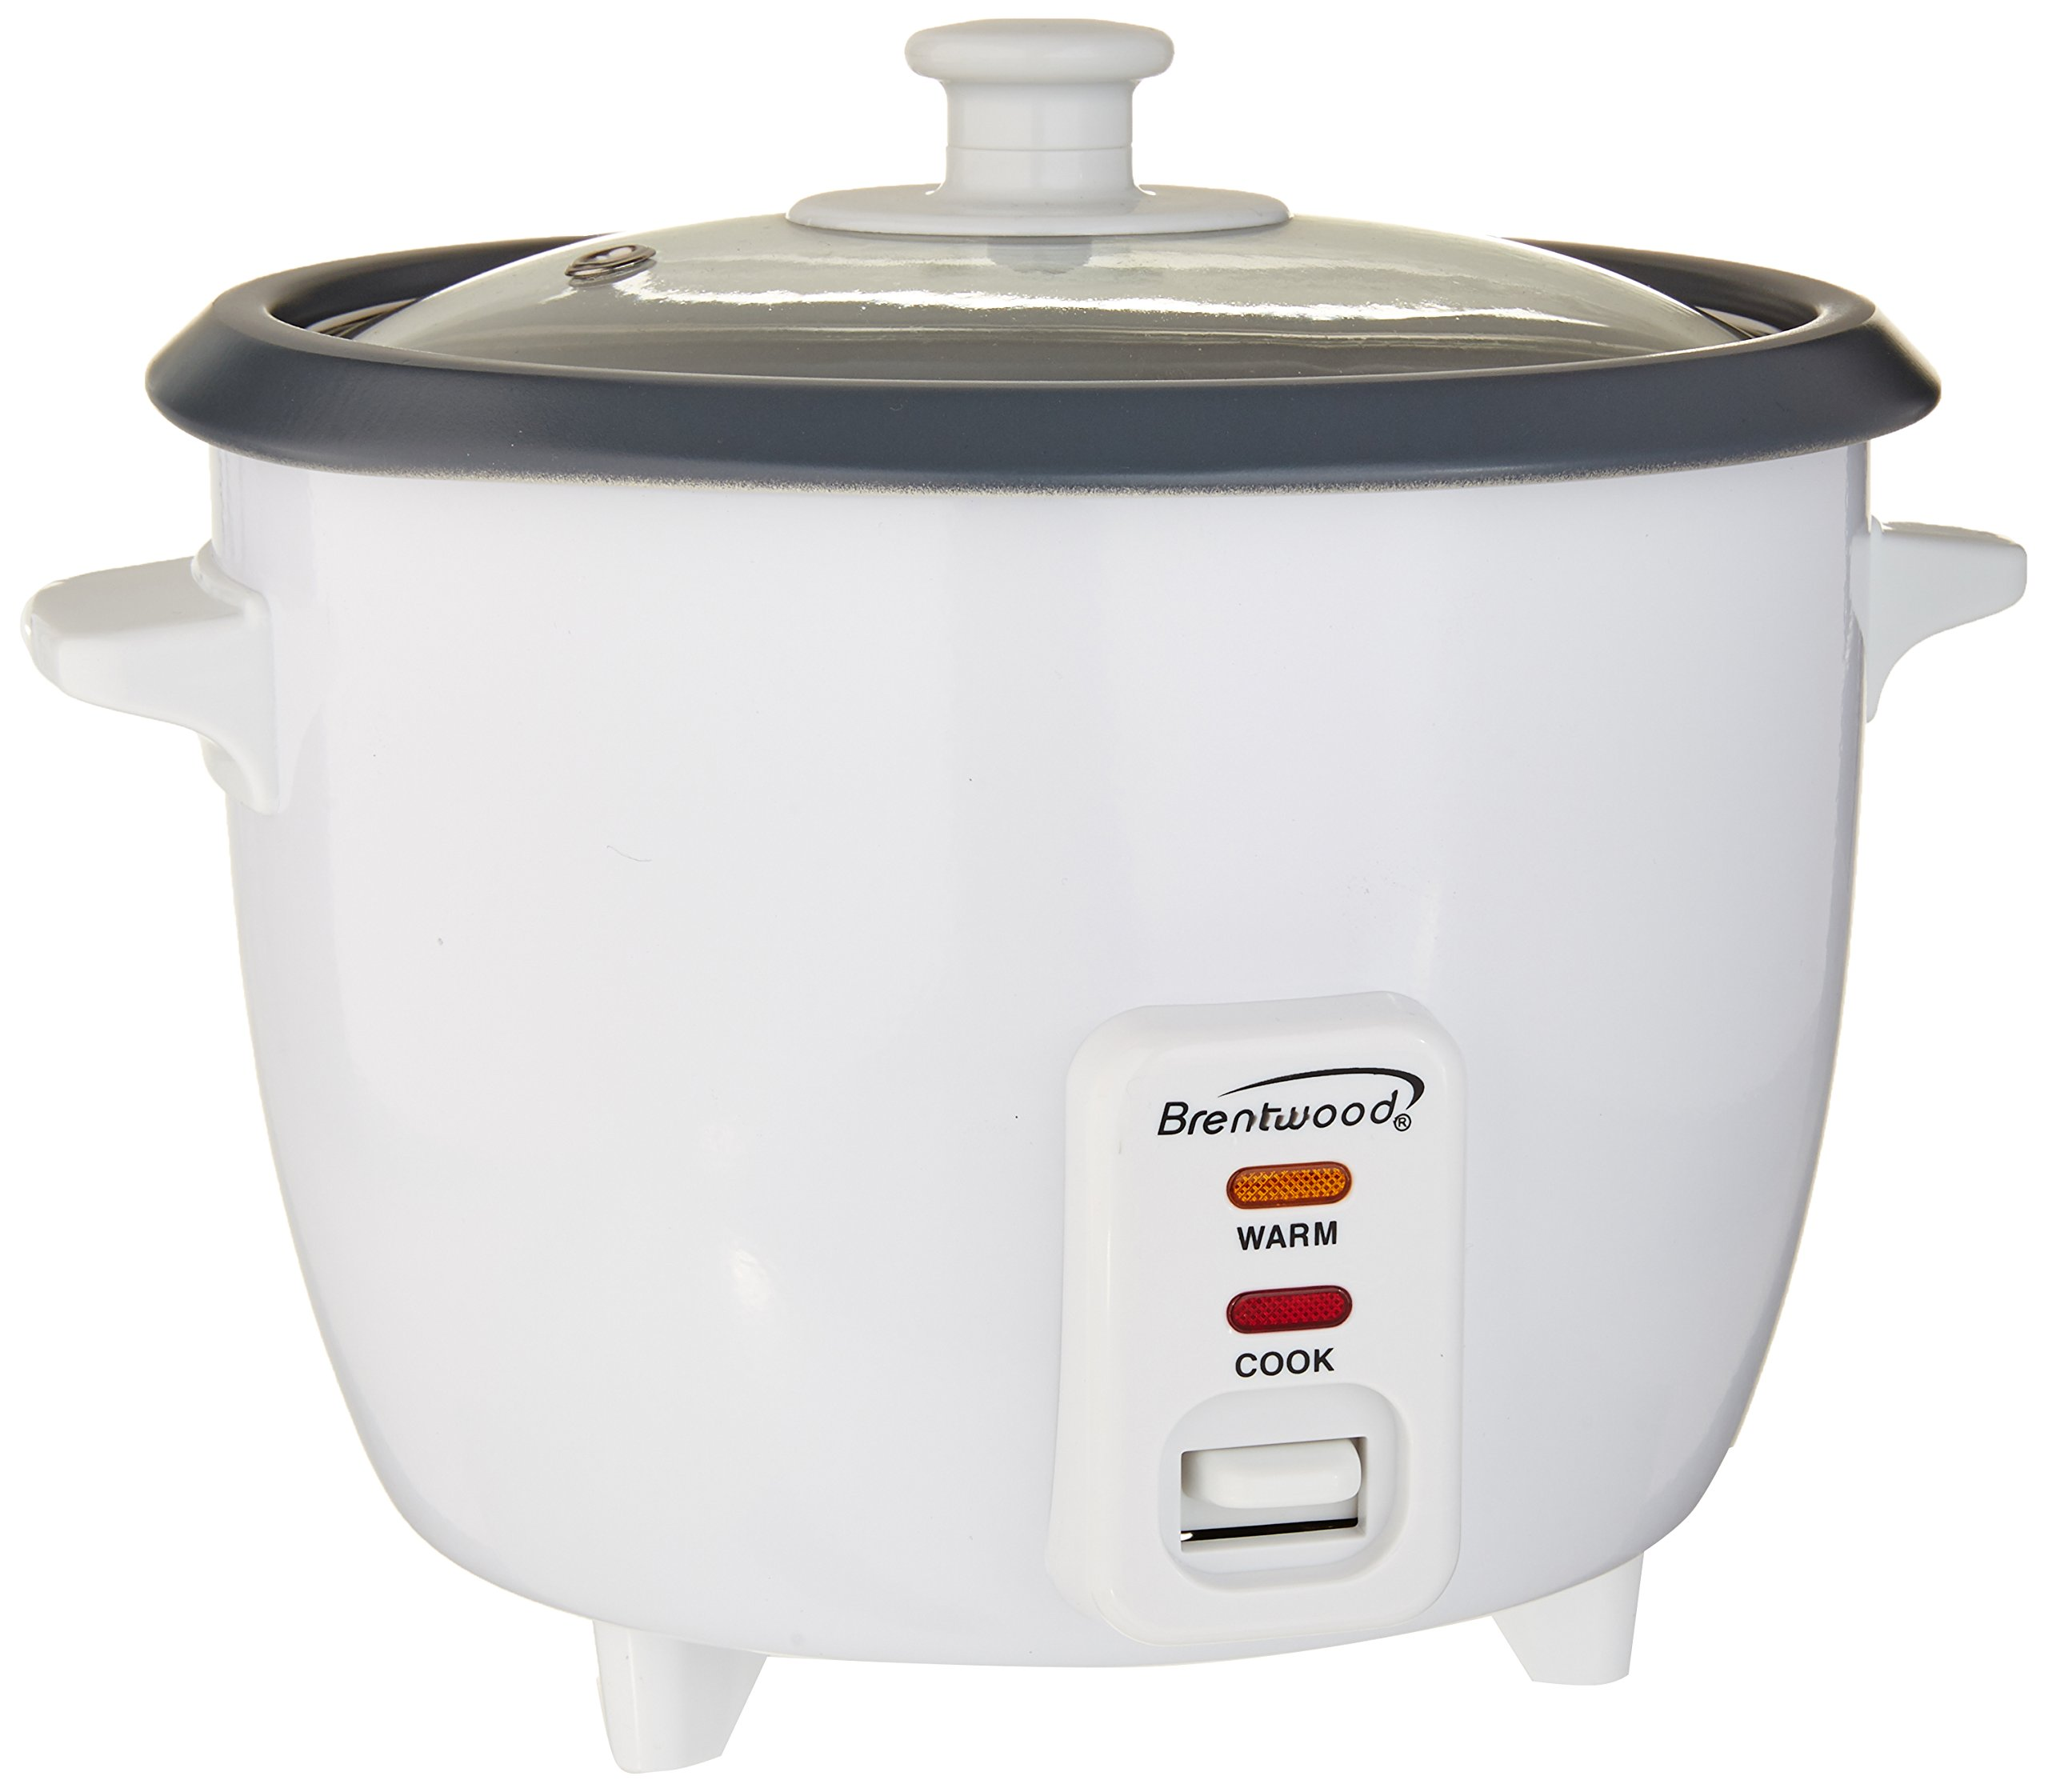 Brentwood Ts-600S. Cup Rice Cooker +Steamer Attachment. White Home. Garden